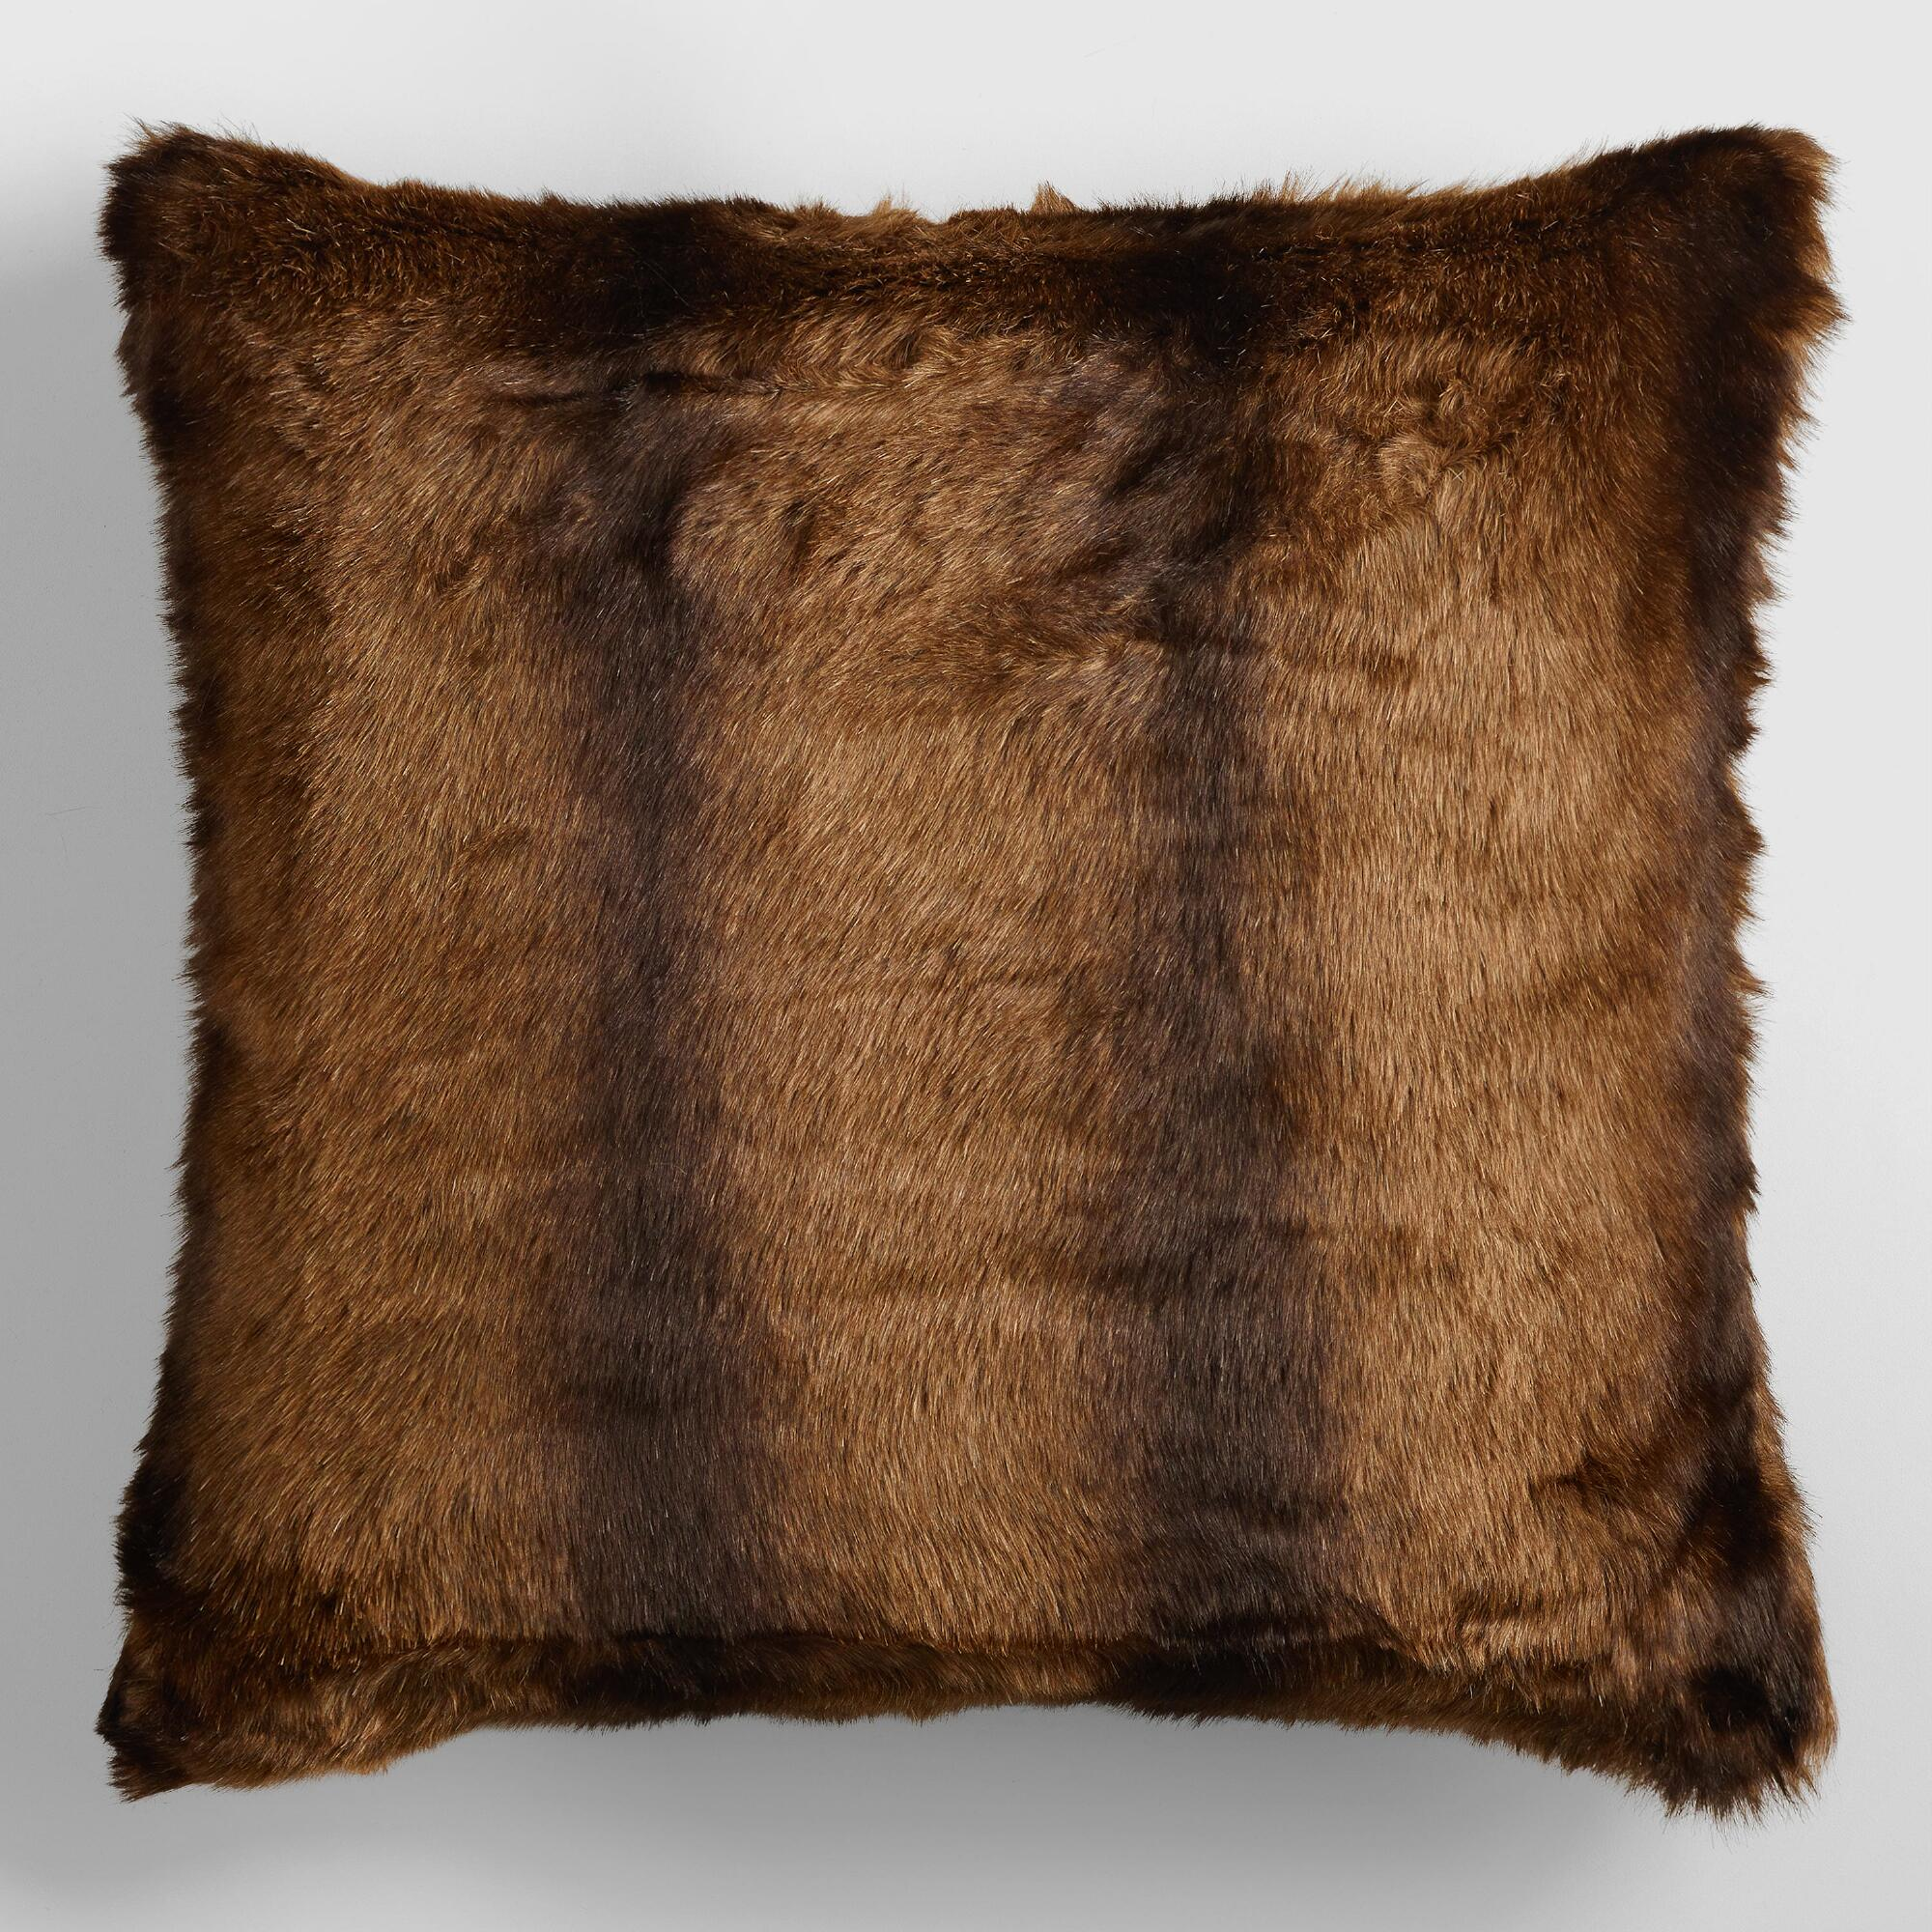 Decorative Pillows And Throws : Faux Mink Fur Throw Pillow World Market